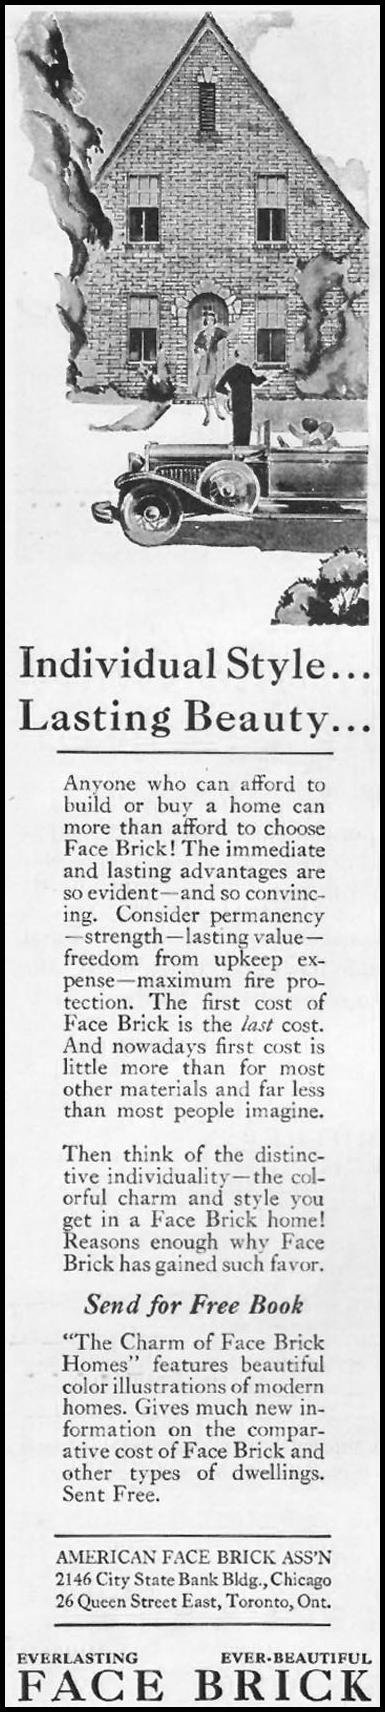 FACE BRICK BETTER HOMES AND GARDENS 10/01/1930 p. 82